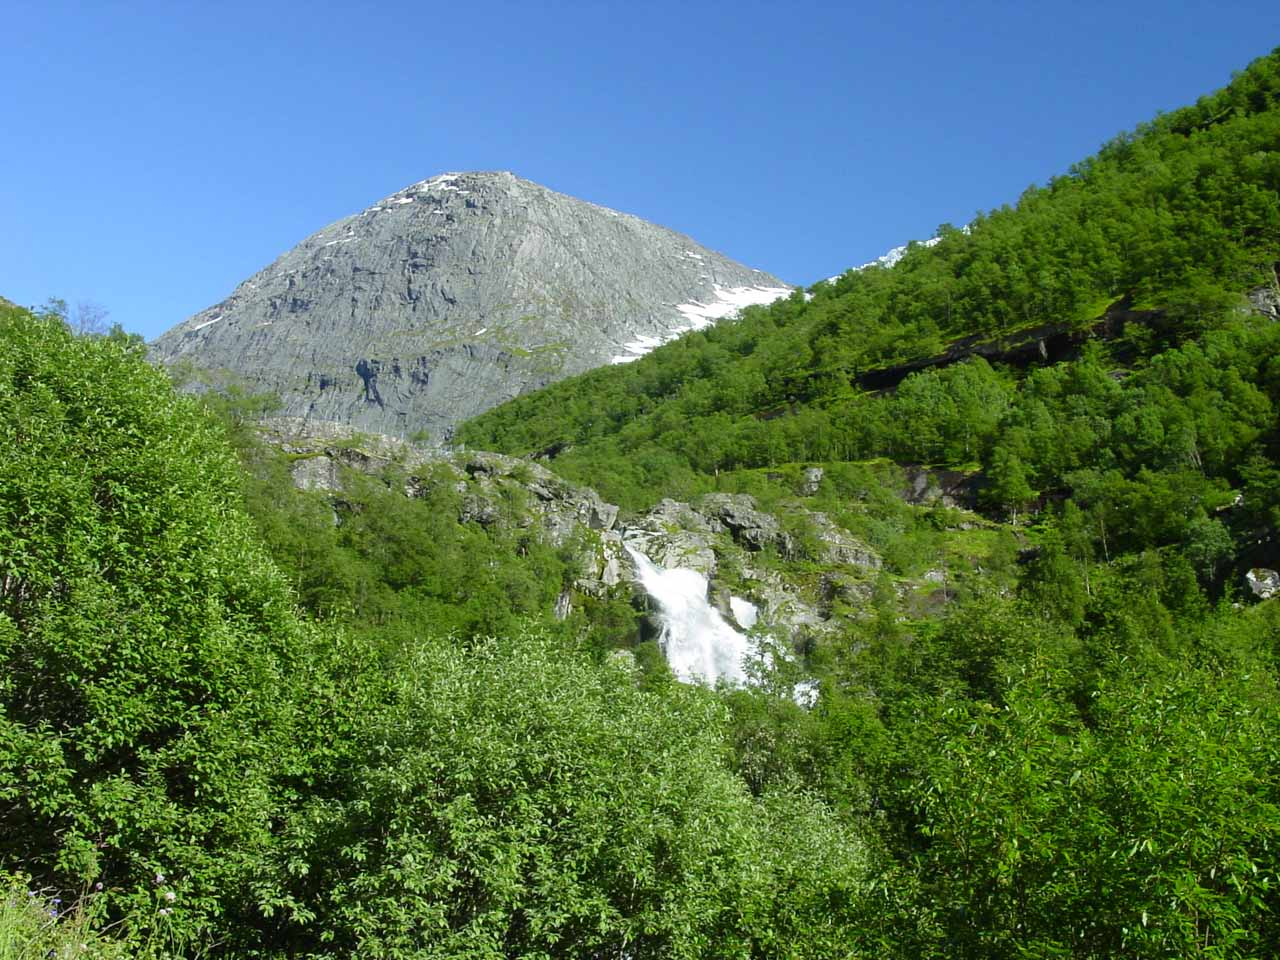 We started to see parts of Kleivafossen fairly early in the hike